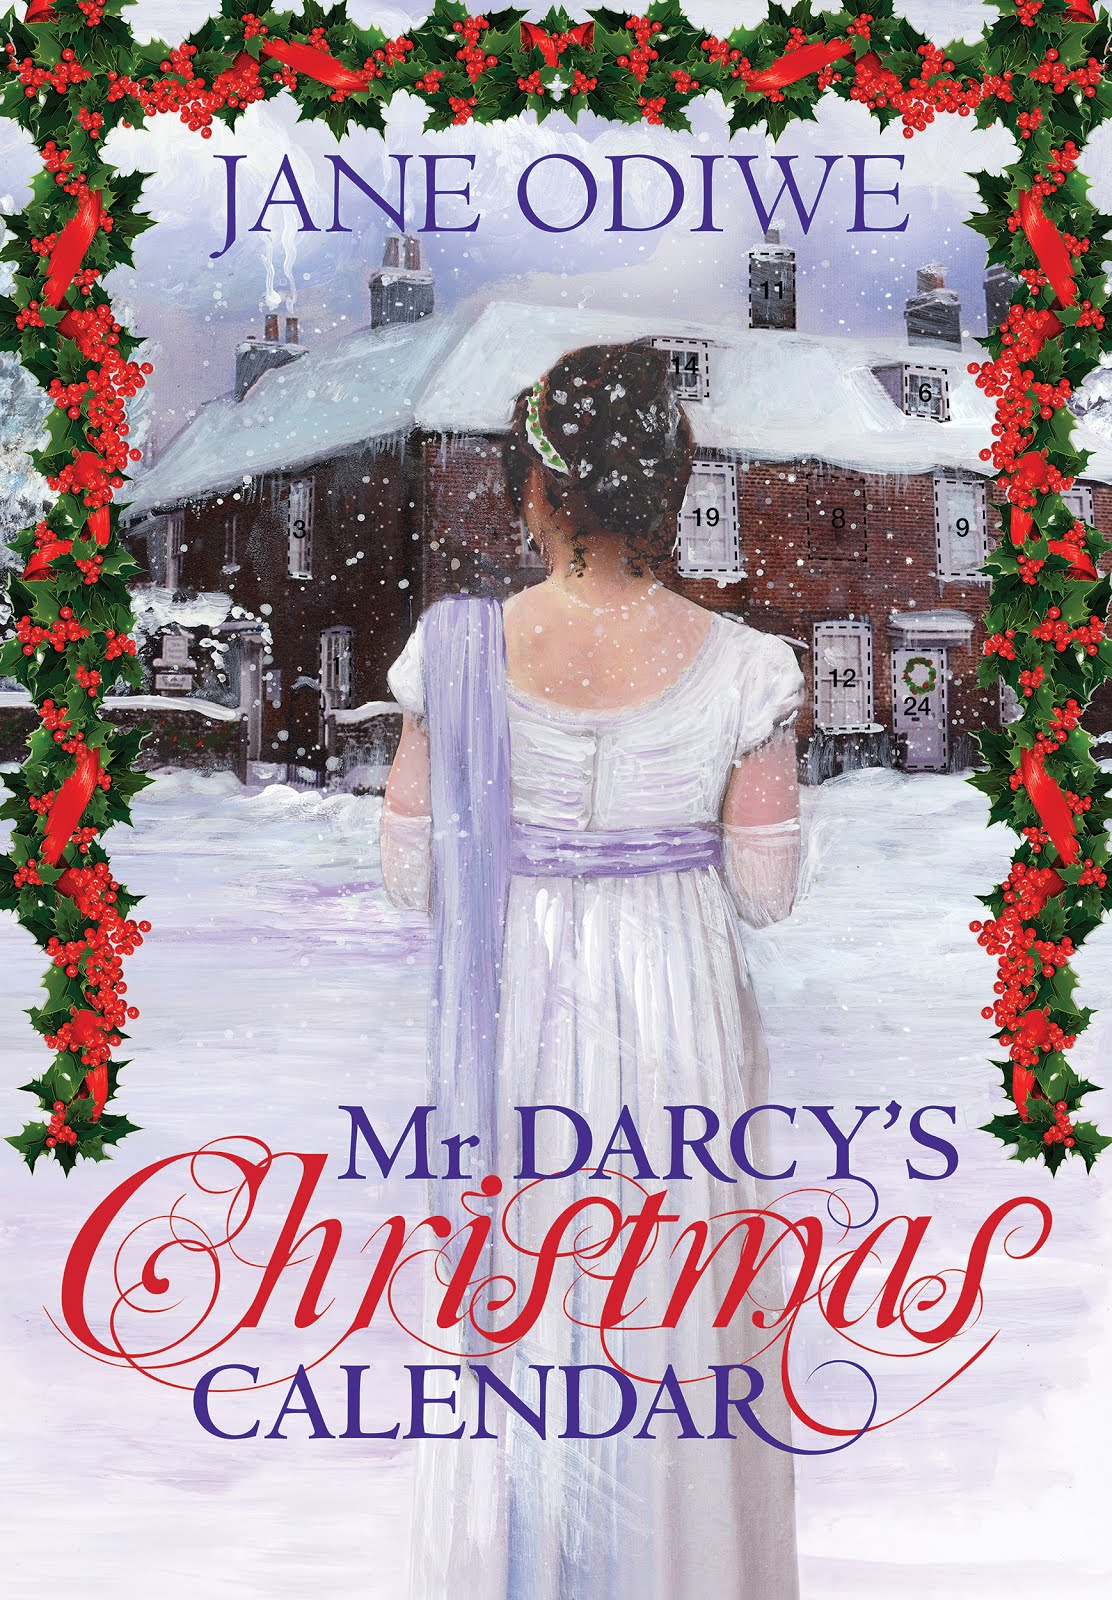 Mr Darcy's Christmas Calendar